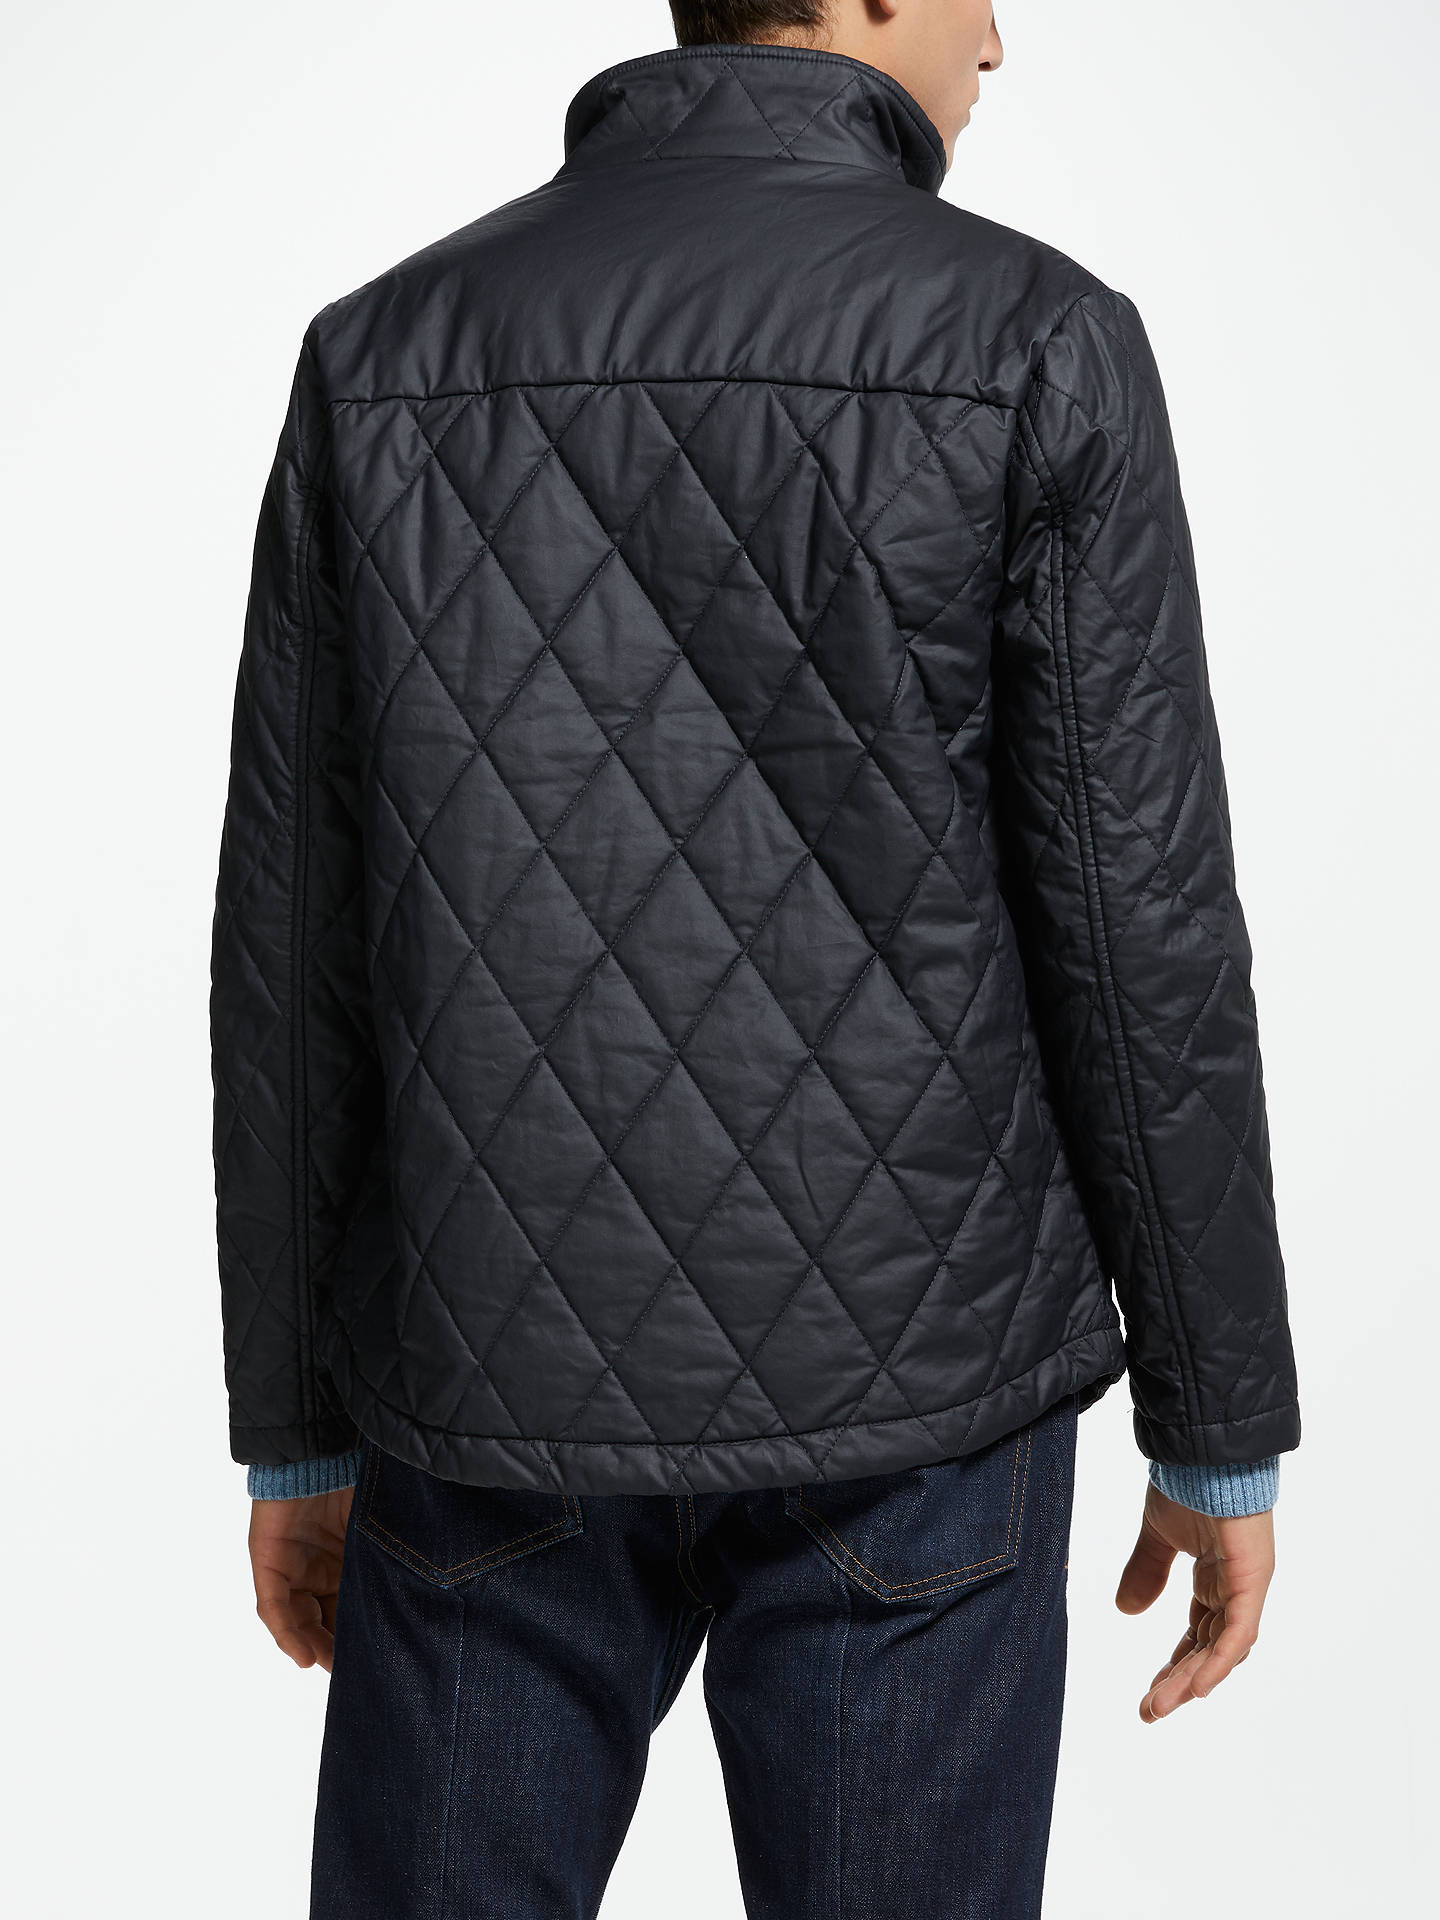 BuyJohn Lewis & Partners Quilted Wax Cotton Jacket, Navy, S Online at johnlewis.com